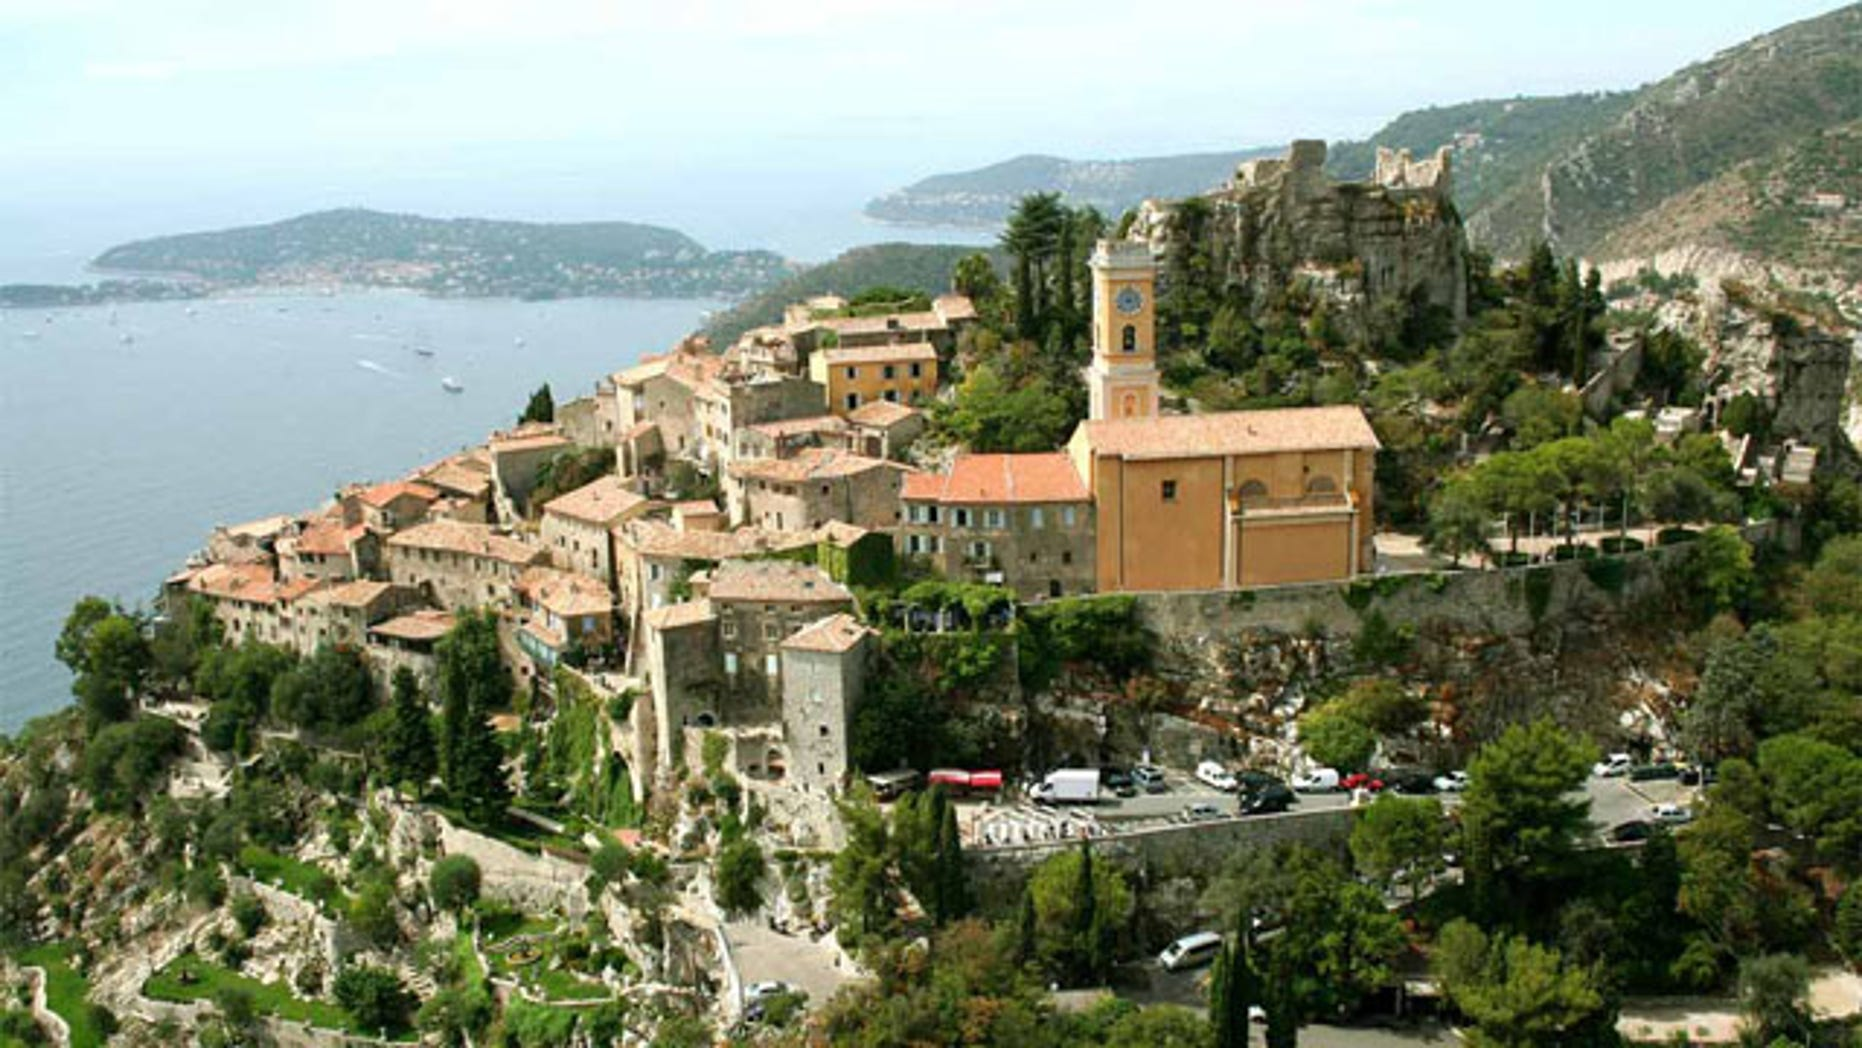 Sweeping Mediterranean views and tons of medieval charm have made the cliff-top town of Eze a popular stop on the French Riviera.